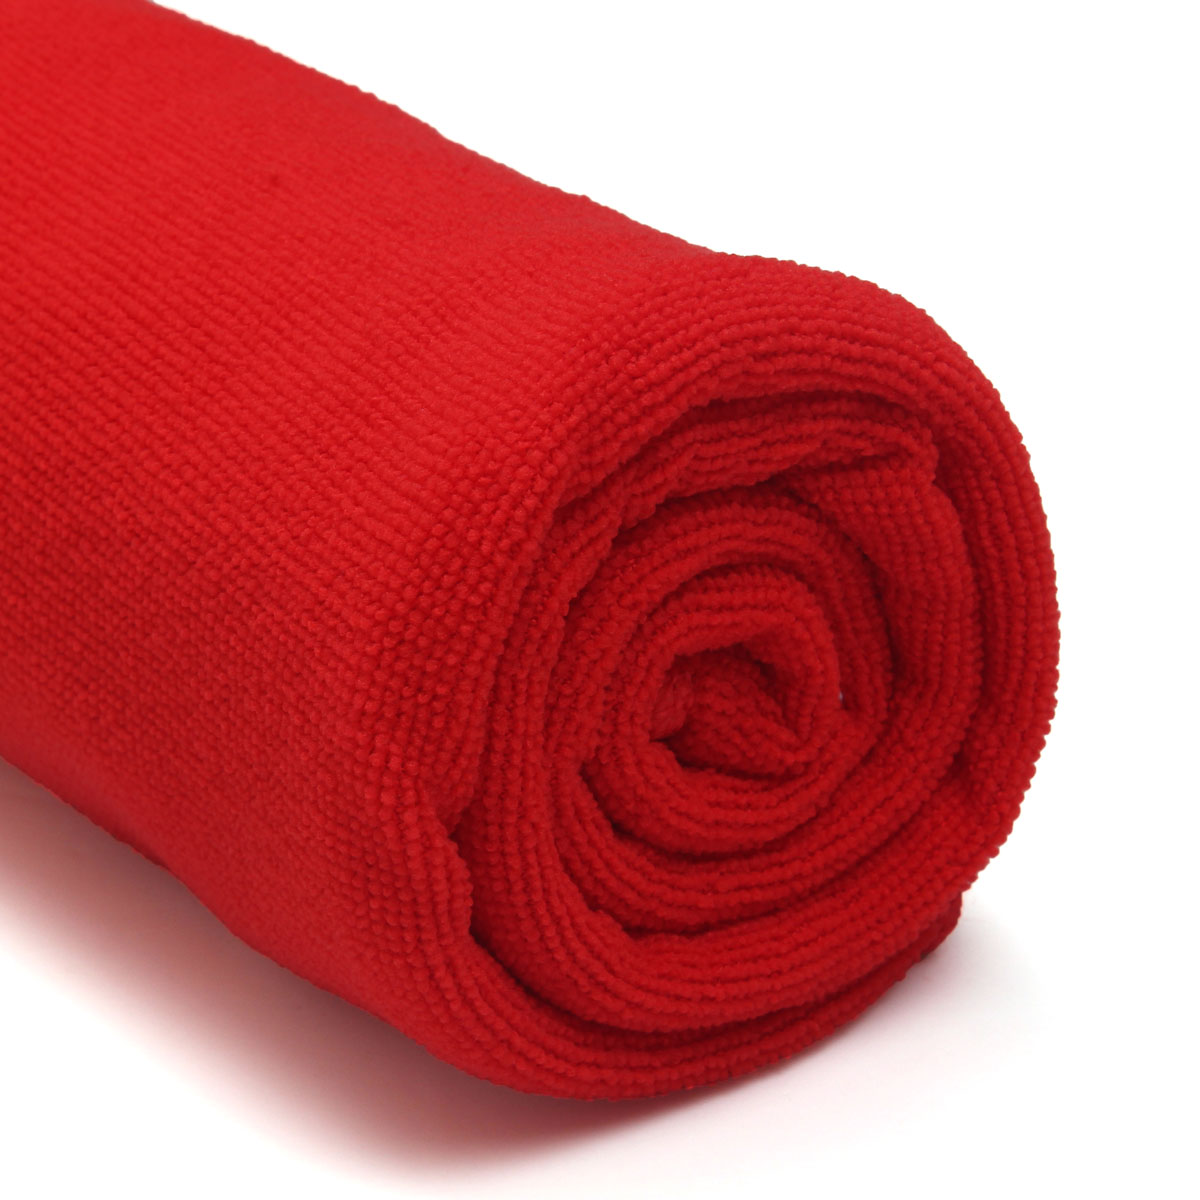 Red Microfiber Bath Towels: Absorbent Microfiber Towel Bath Quick Drying Washcloth